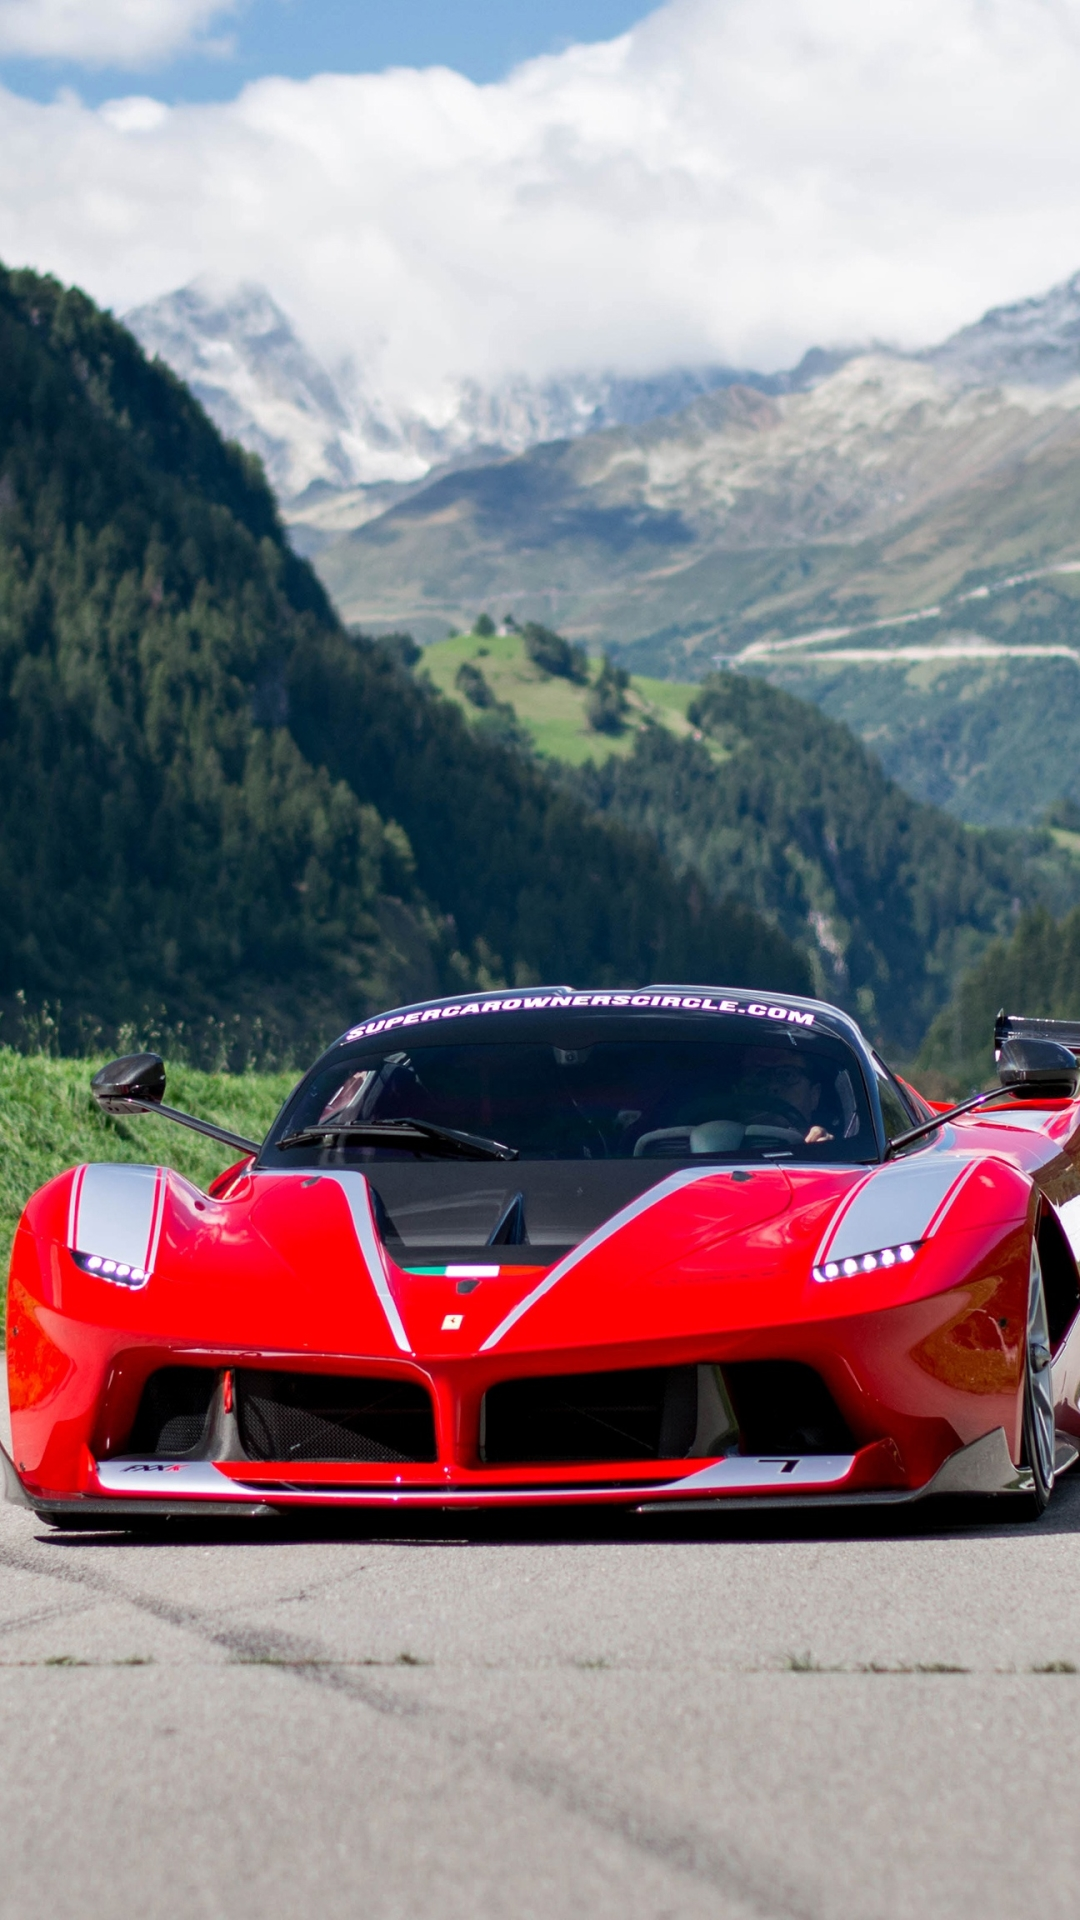 Vehicles Ferrari Fxx K 1080x1920 Wallpaper Id 700469 Mobile Abyss